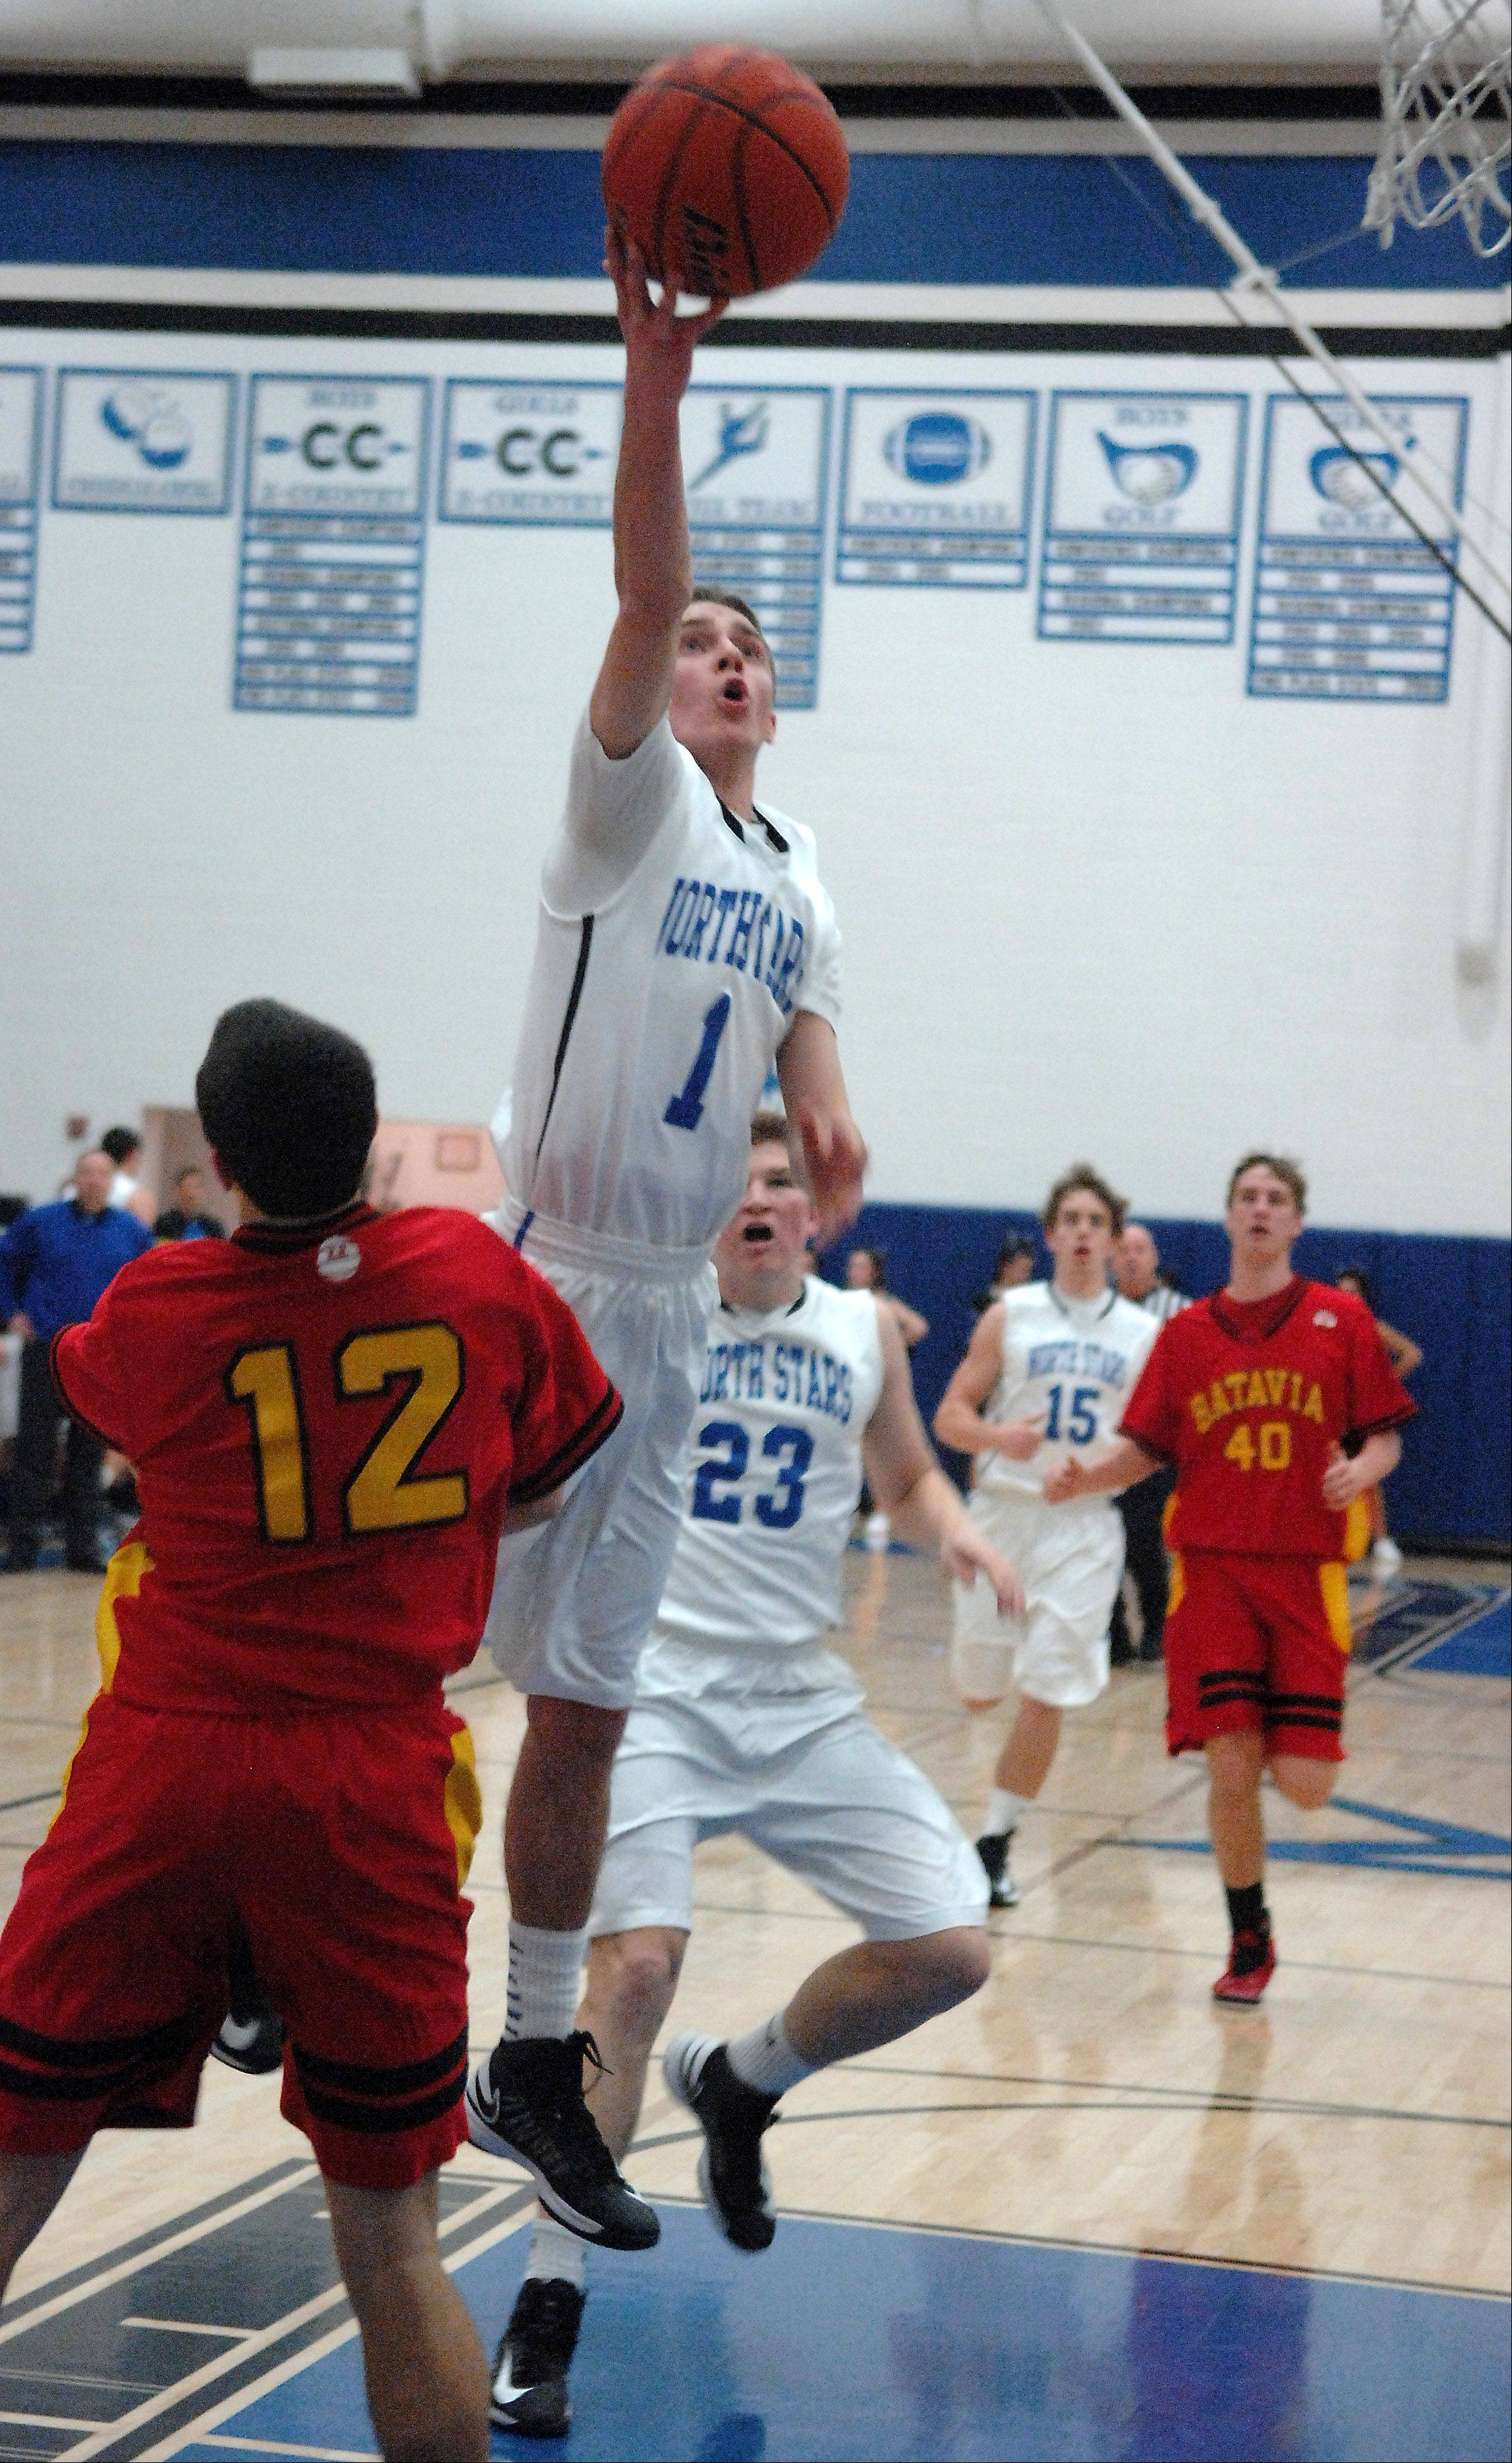 St. Charles North's Alec Goetz puts up a runner as he sails past Batavia's Jeremy Schoessling.